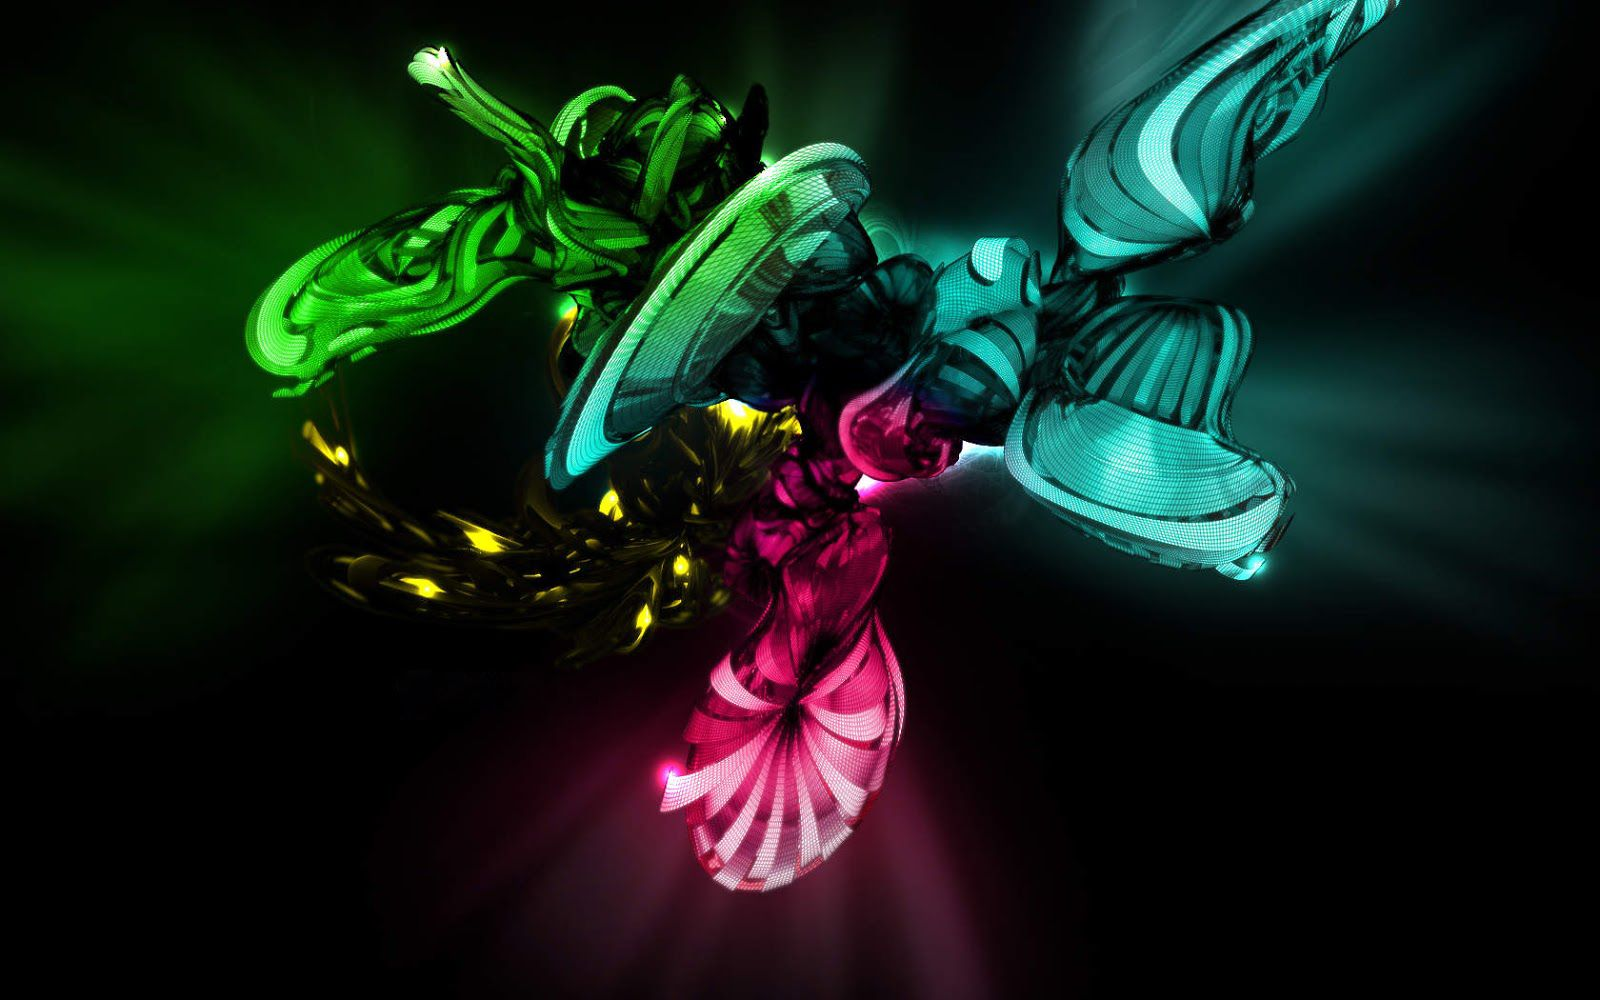 Free Full Version 3D Screensavers ABSTRACT